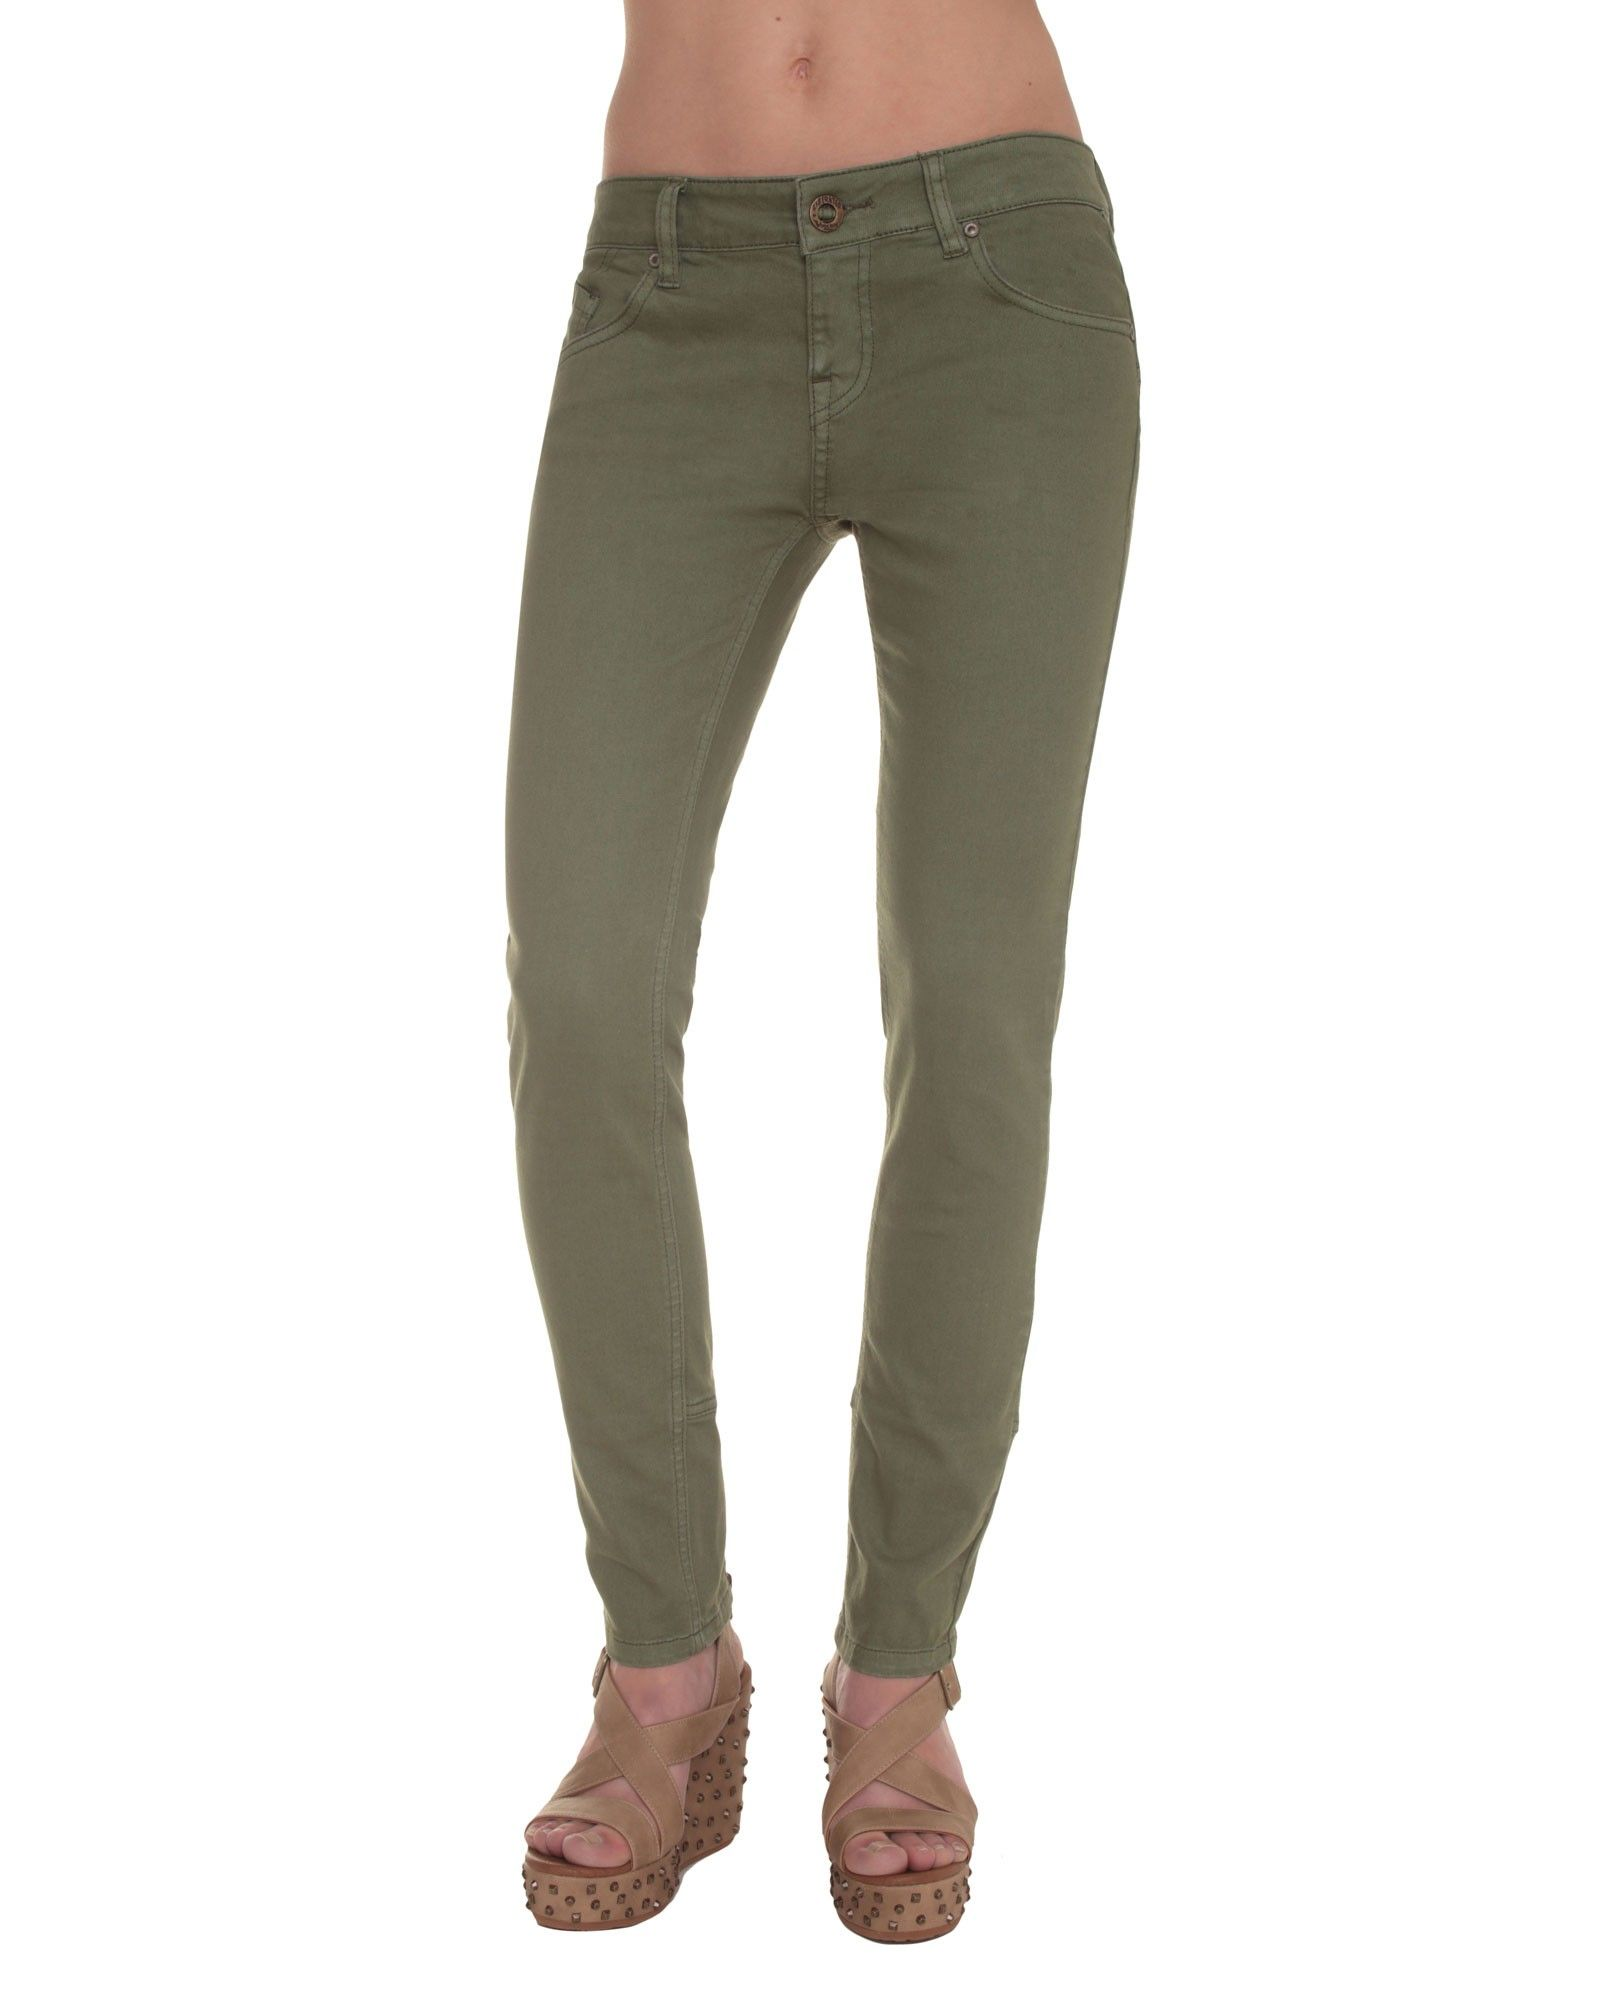 c347da4d55d Oily Skinny Colour Jeans - Slender legs guaranteed in these super skinny  jeans available in three colours. A zip travels up the ankle back hem and  attracts ...